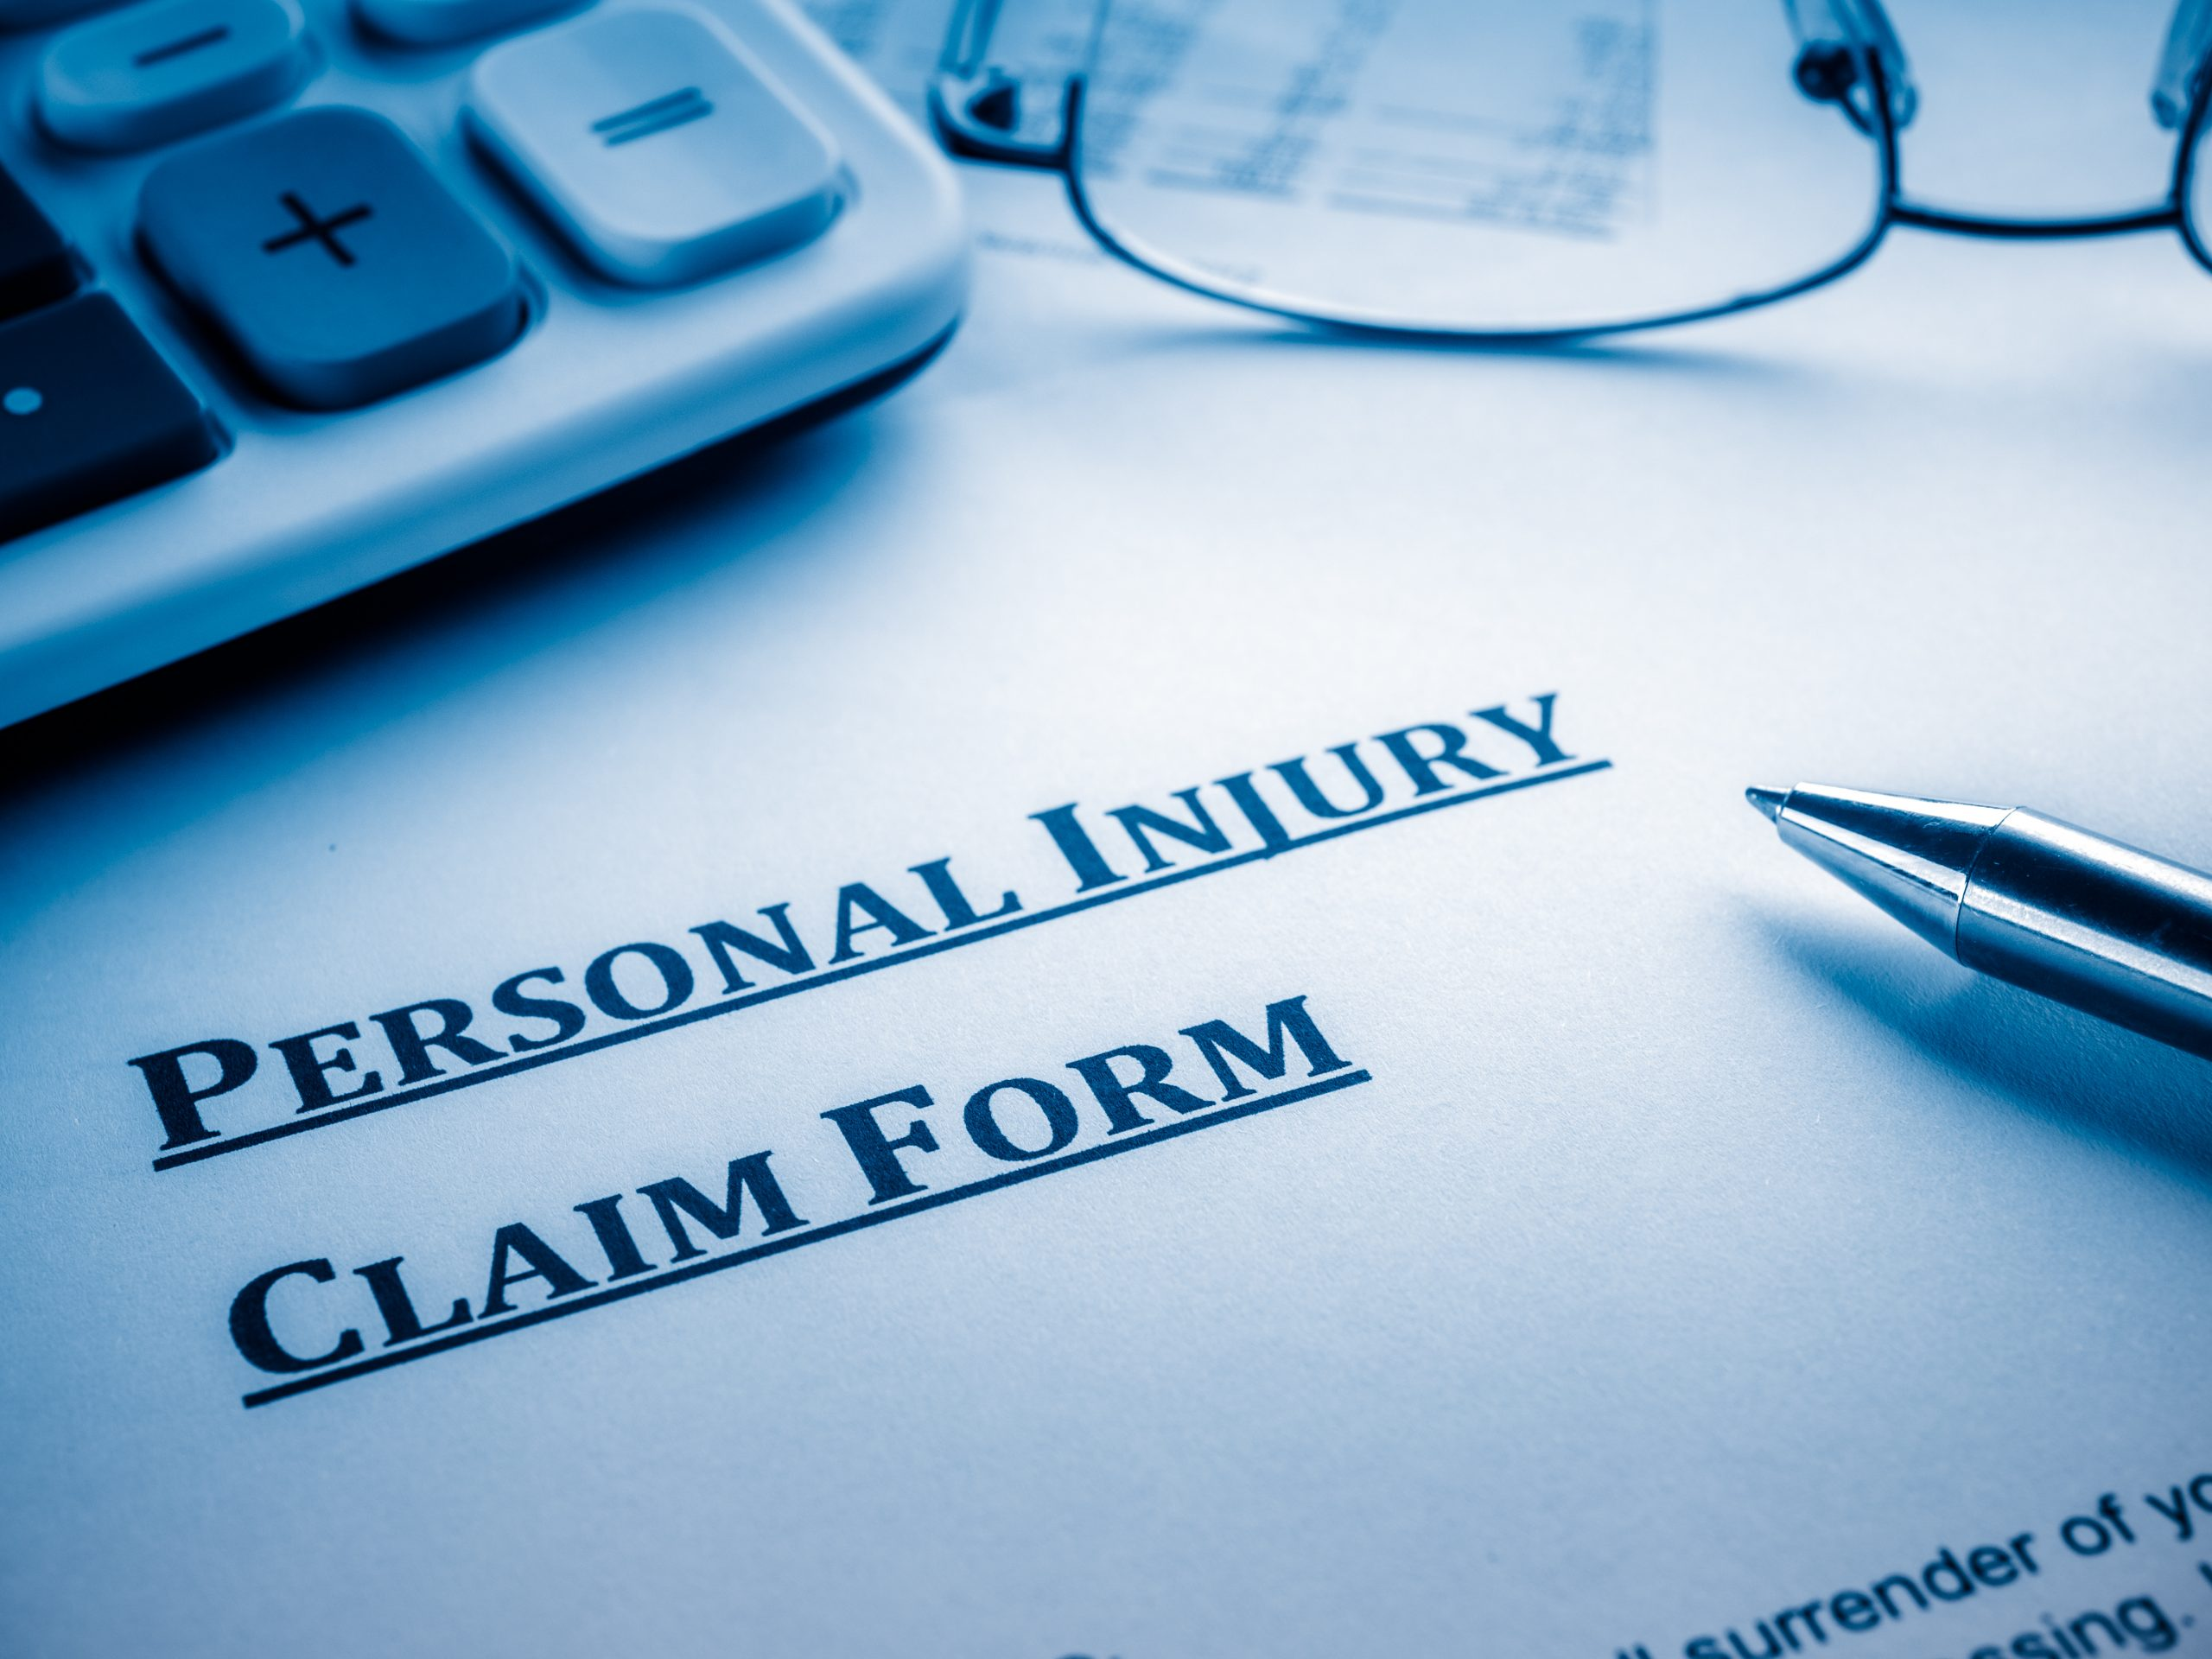 personal injury claim form with pen, glasses and calculator